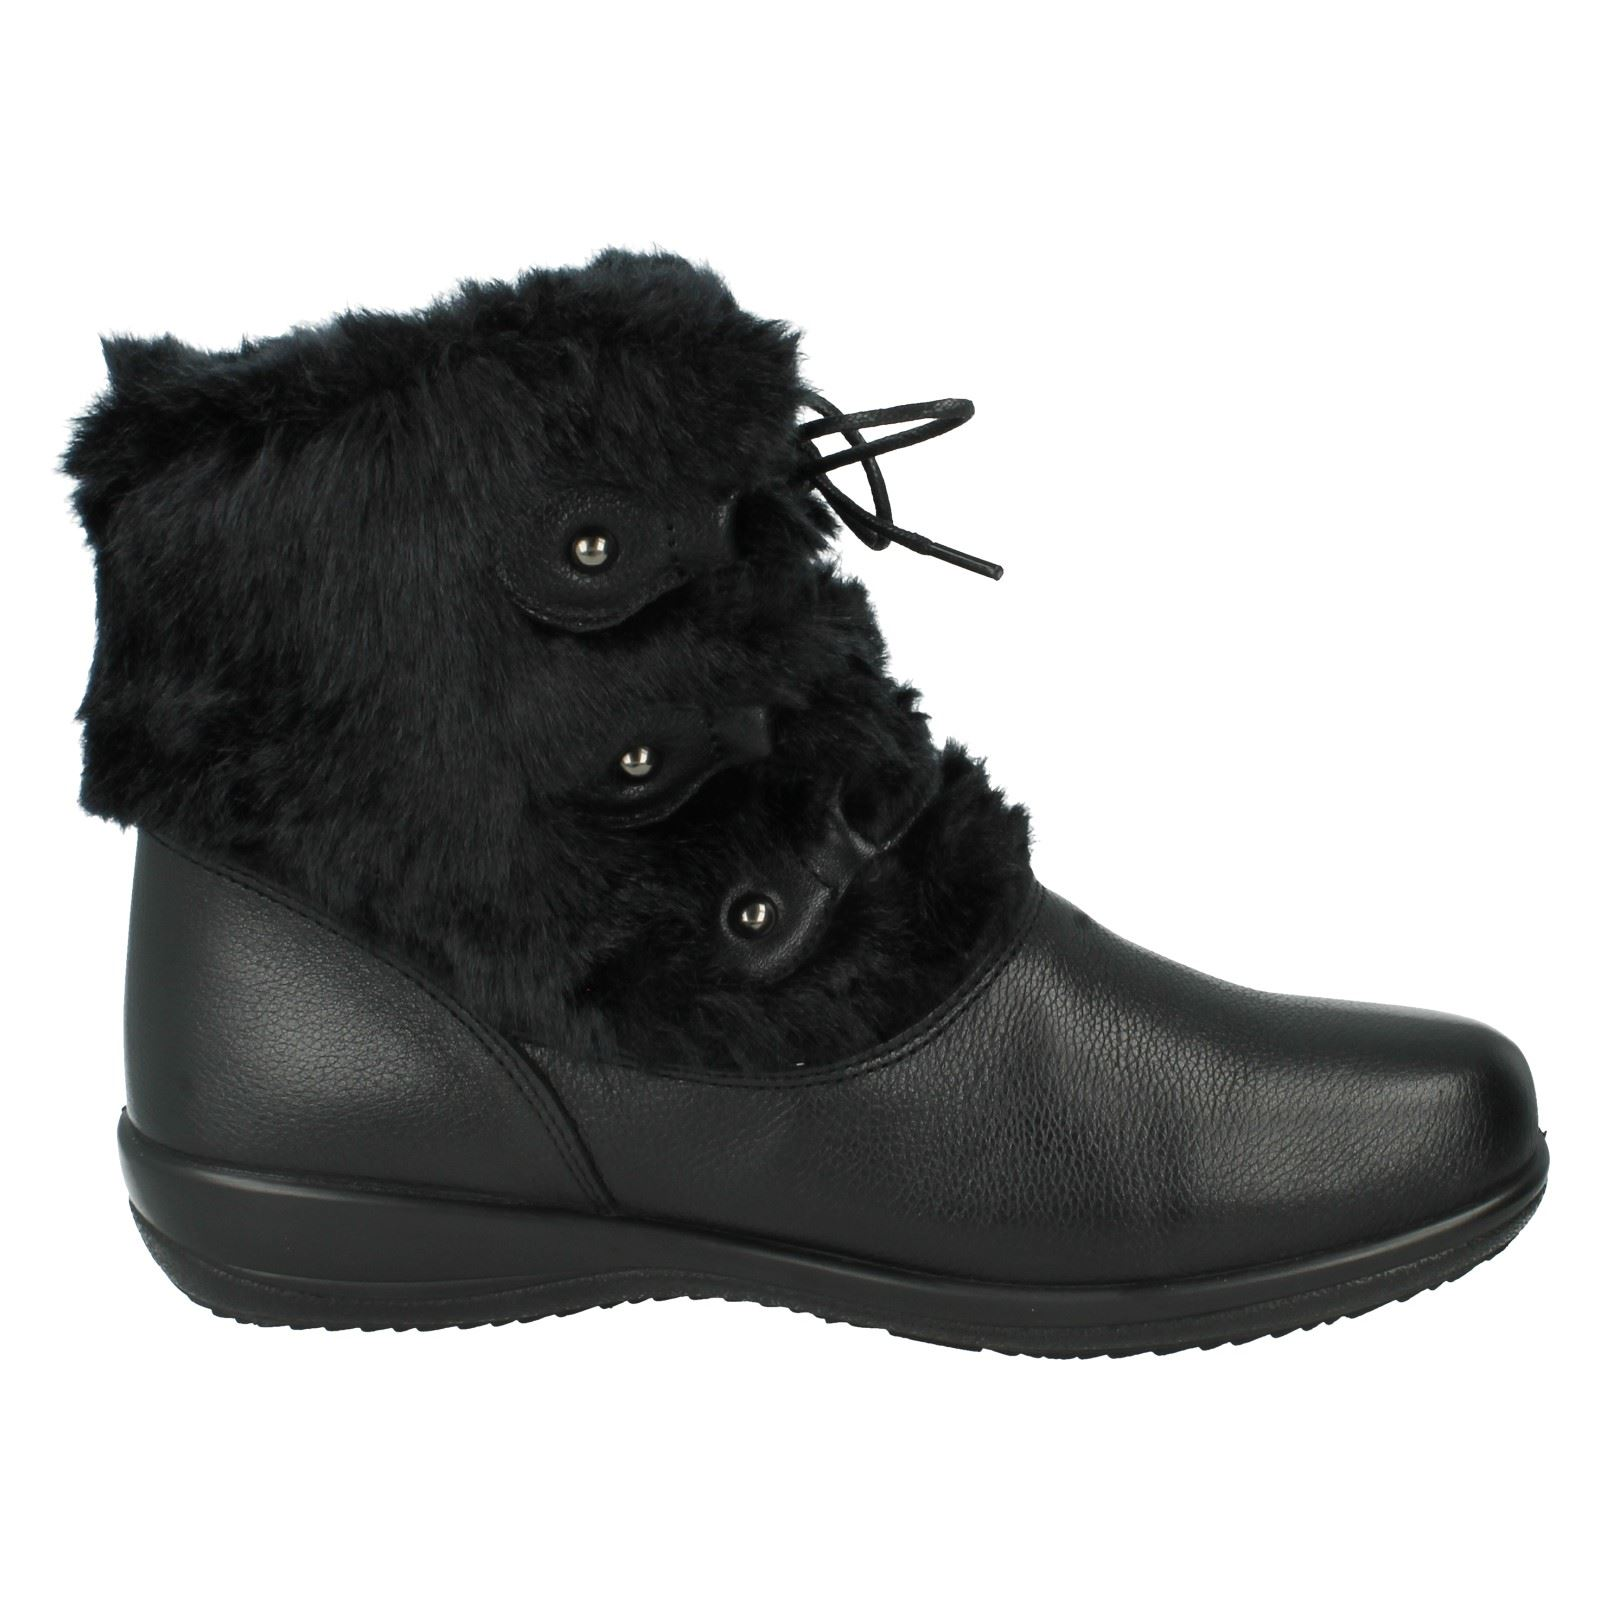 Kim Ankle Ladies Boots Black The Style Padders XFXwfqA